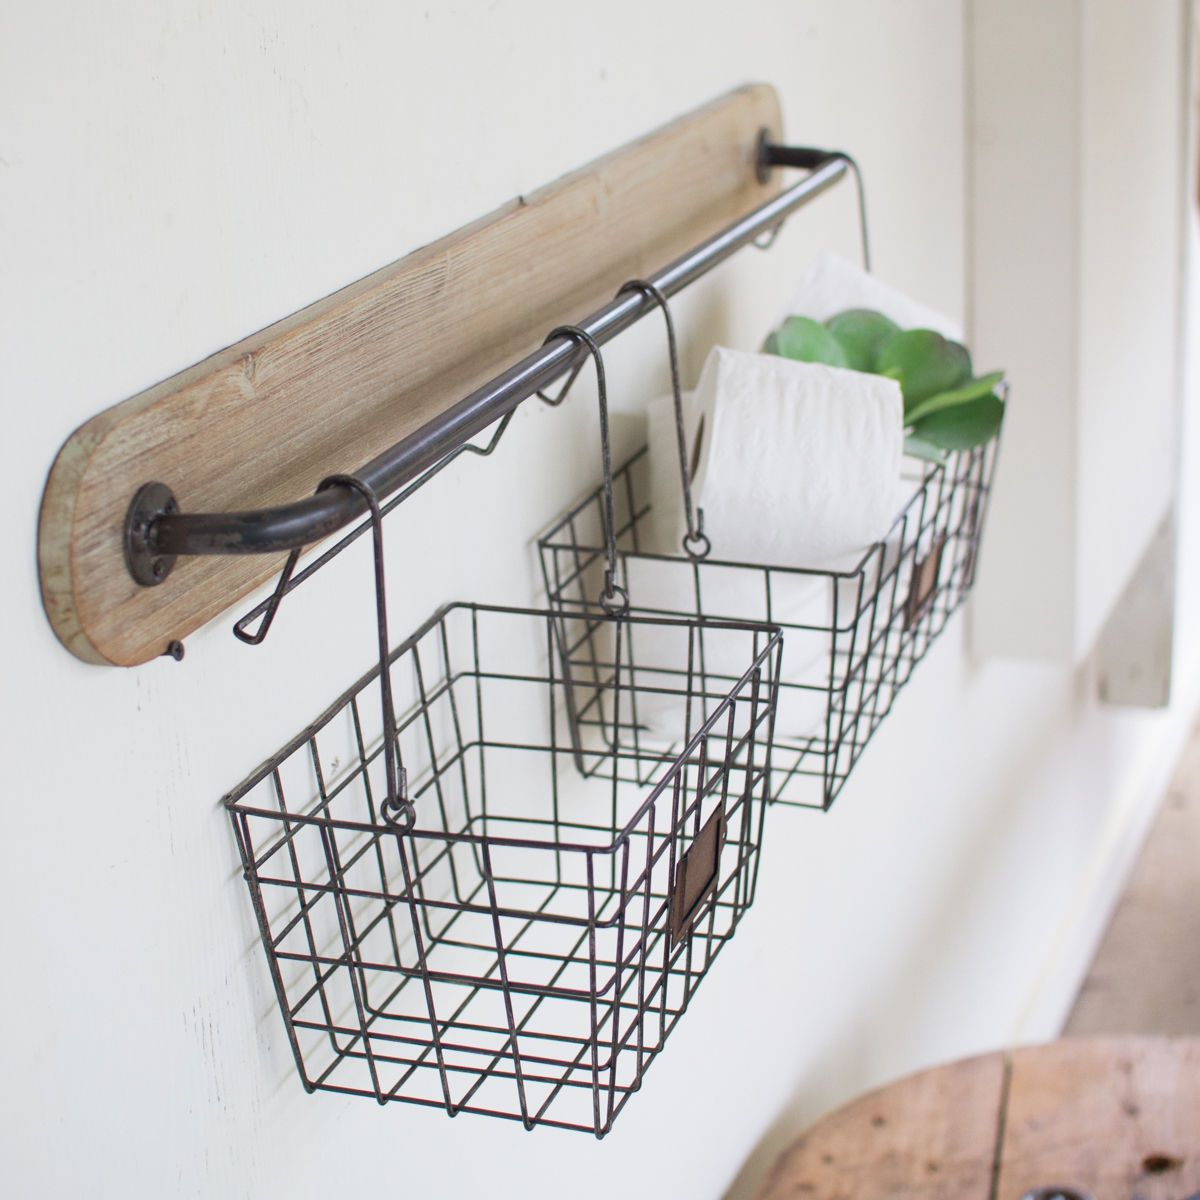 Metal Wire Basket Bins Wall Decor Versatile Metal Wire Basket Wall Decor Display Storage With Removable Baskets For Ea Wire Baskets Wall Brackets Diy Bathroom